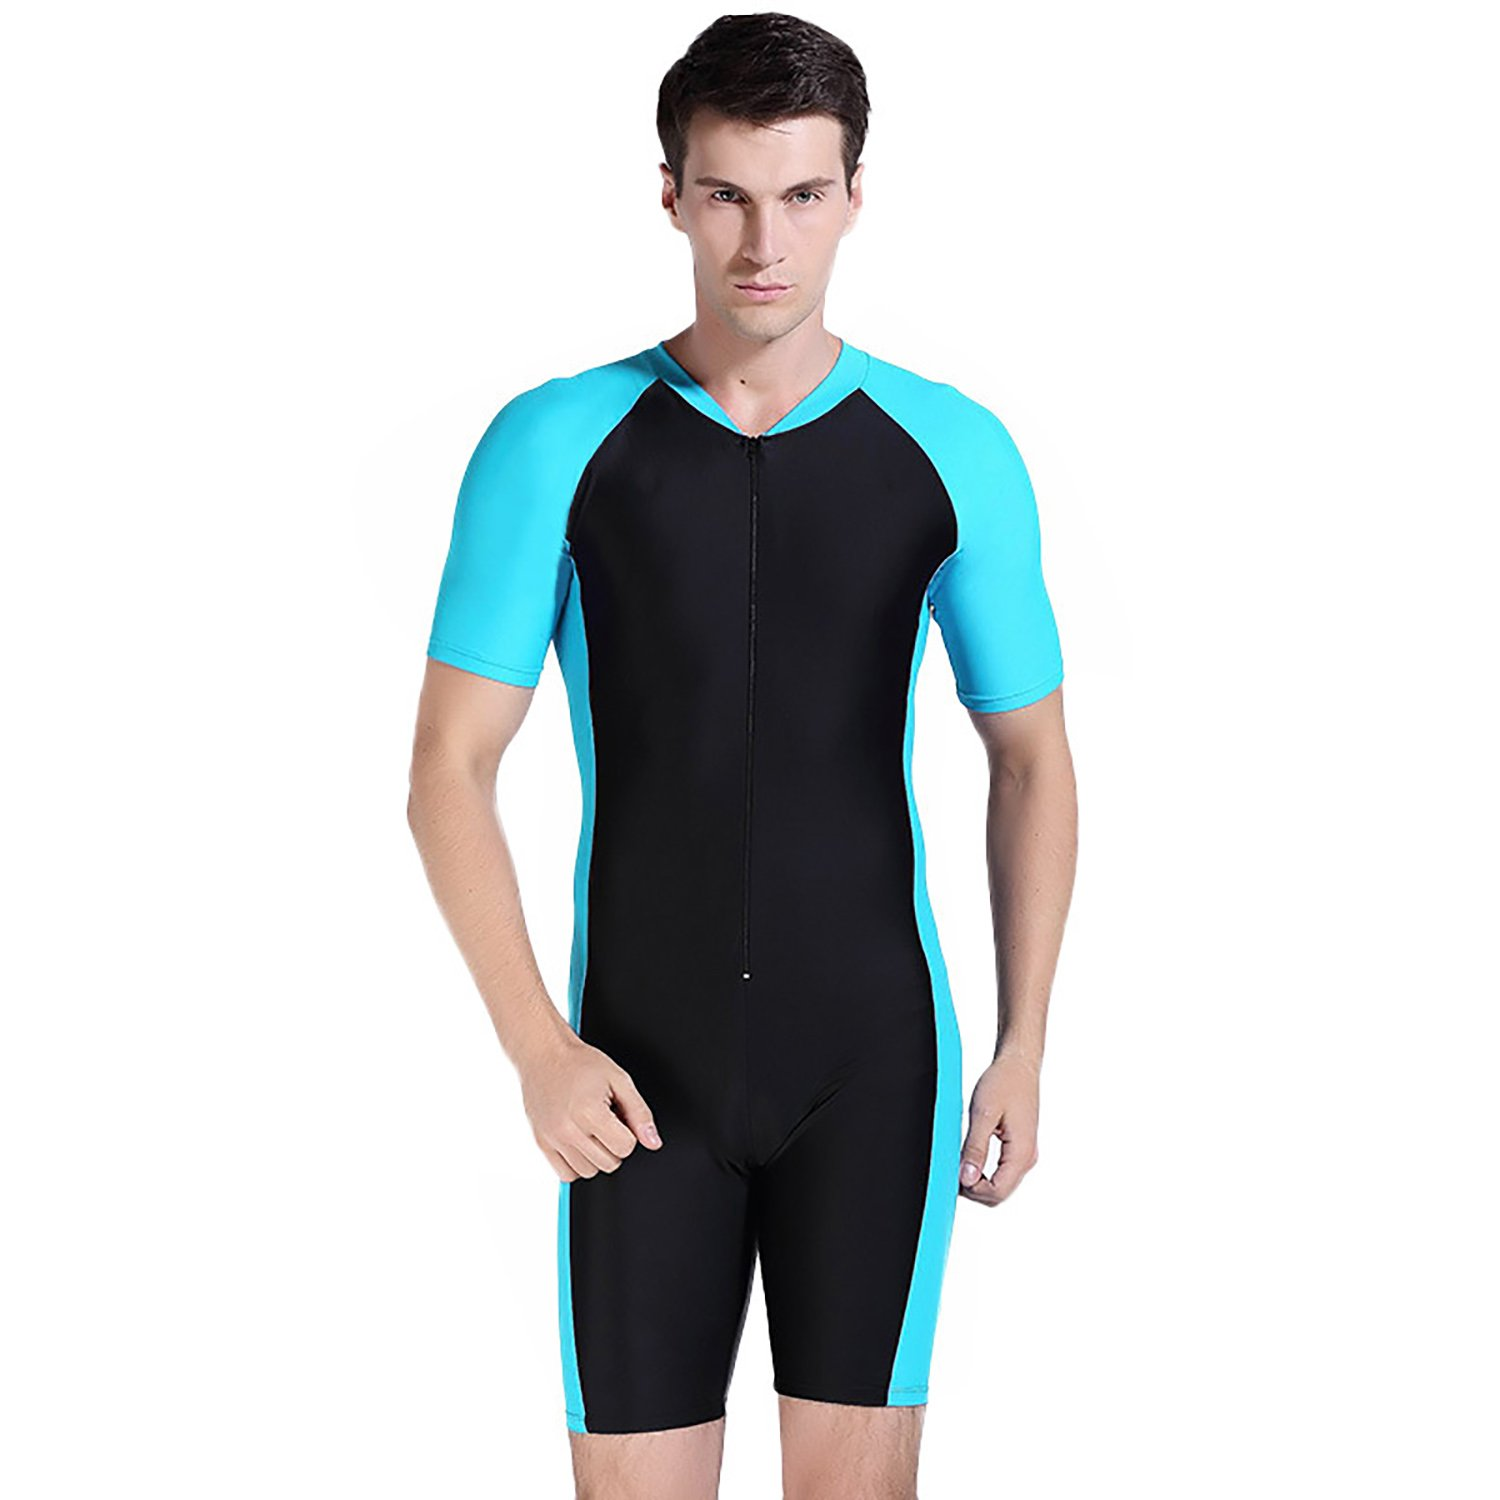 Cahayi One-Piece Surfing Snorkeling Swimsuit Short Sleeve Swimwear Plus Size